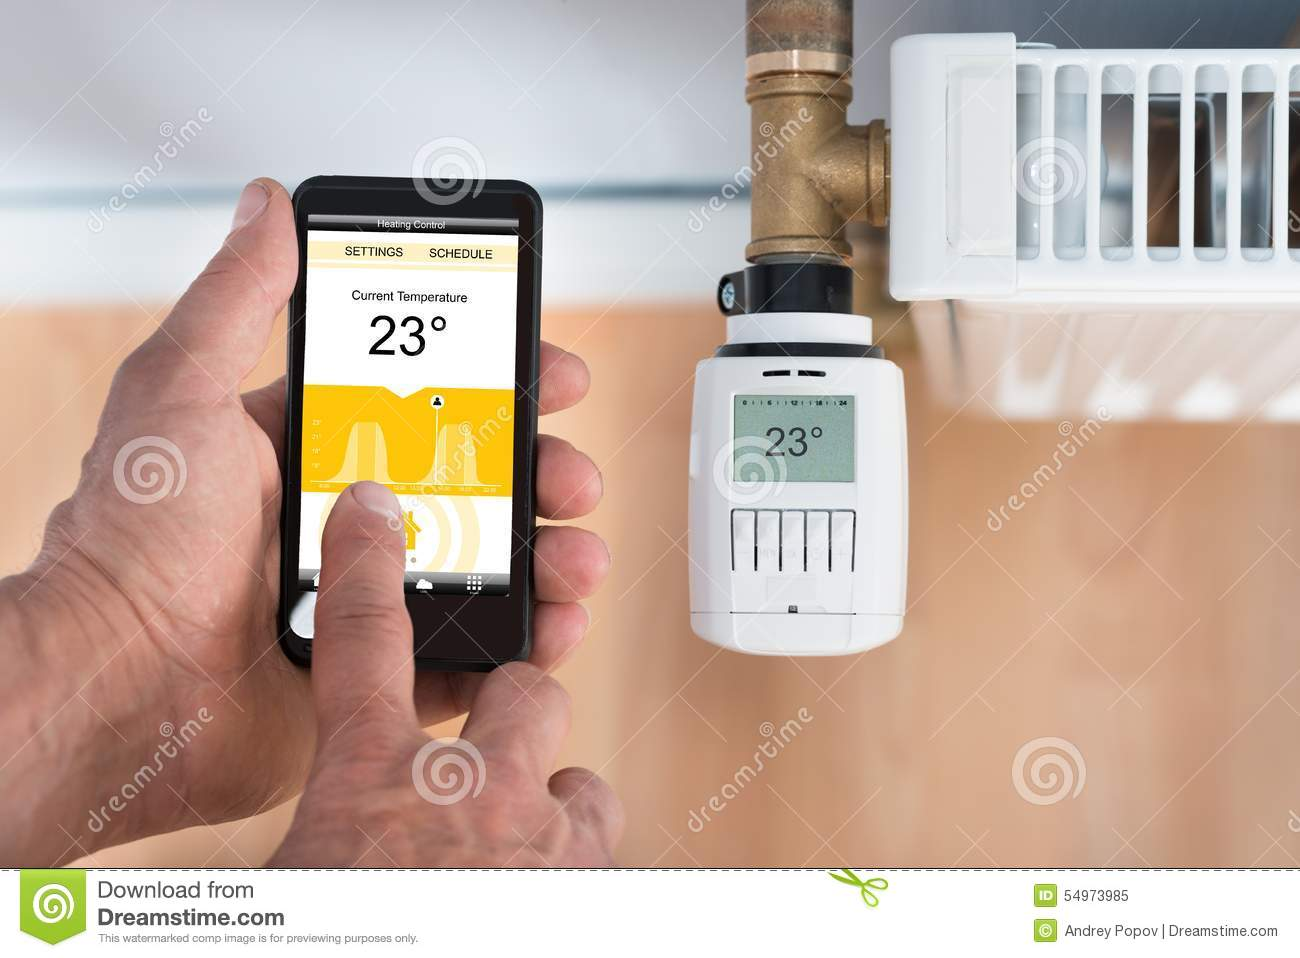 Voreinstellbare Thermostatventile Person Hand Adjusting Temperature Of Thermostat Using